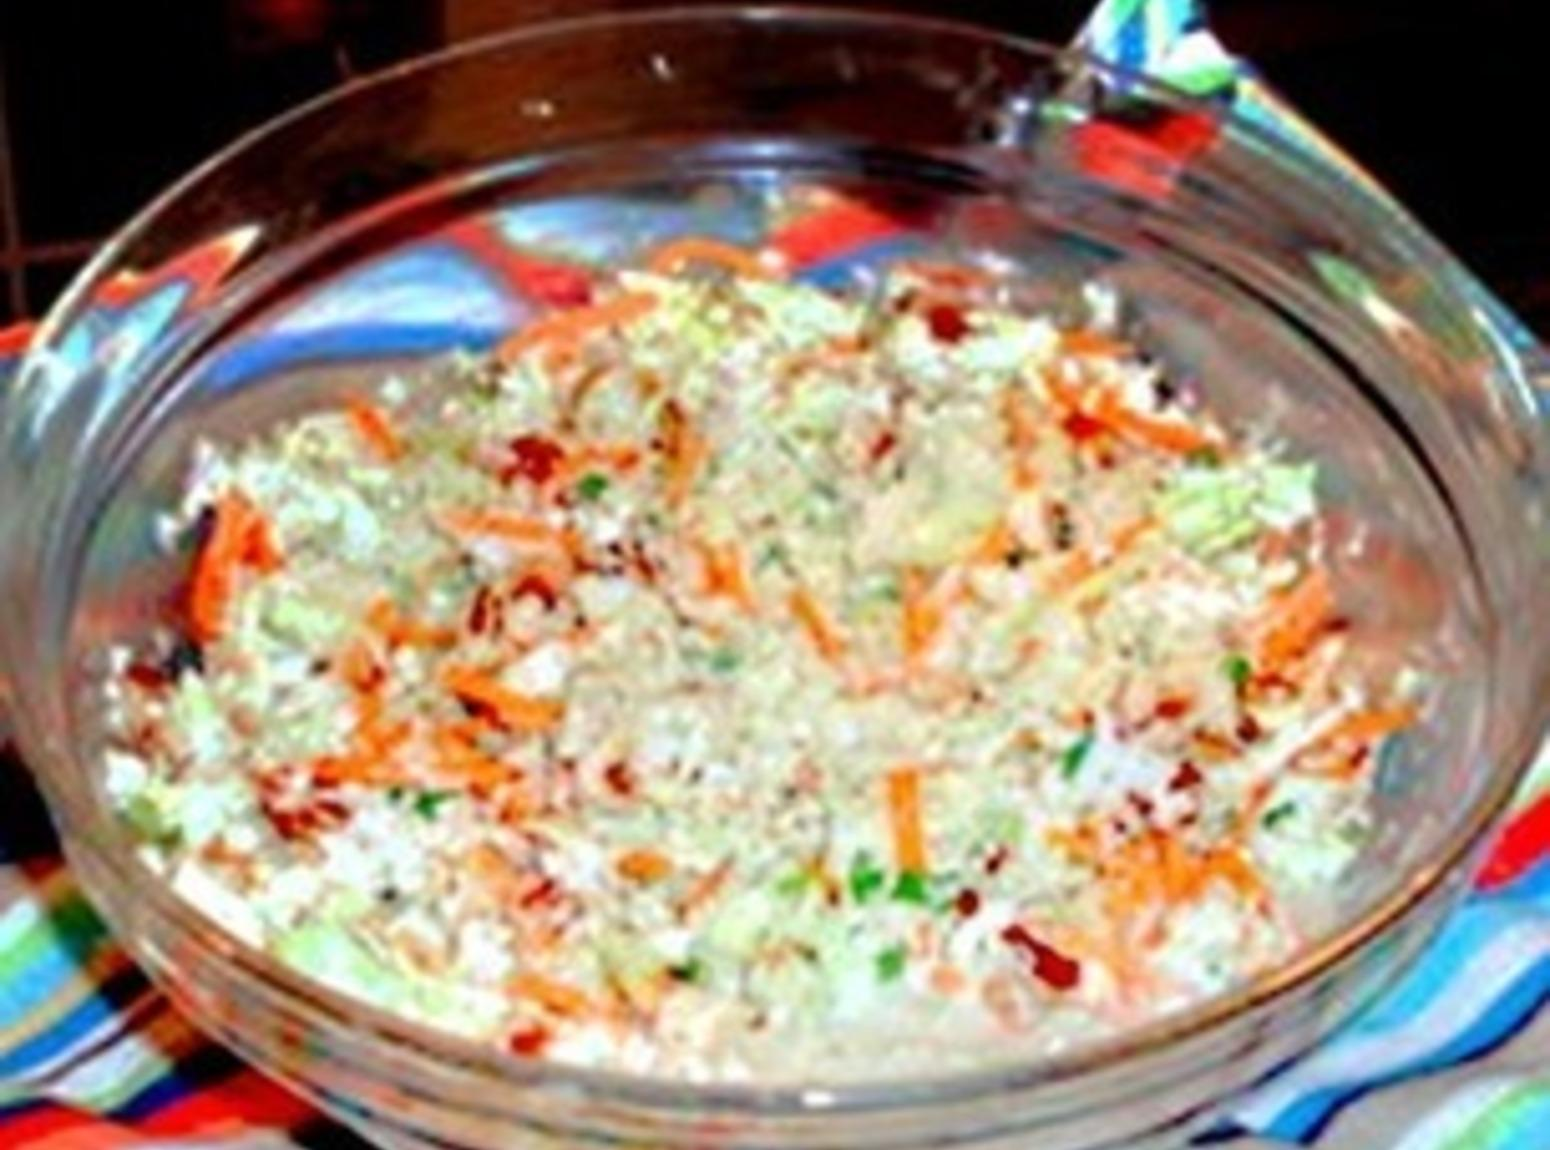 Bleu Cheese and Bacon Coleslaw Recipe | Just A Pinch Recipes